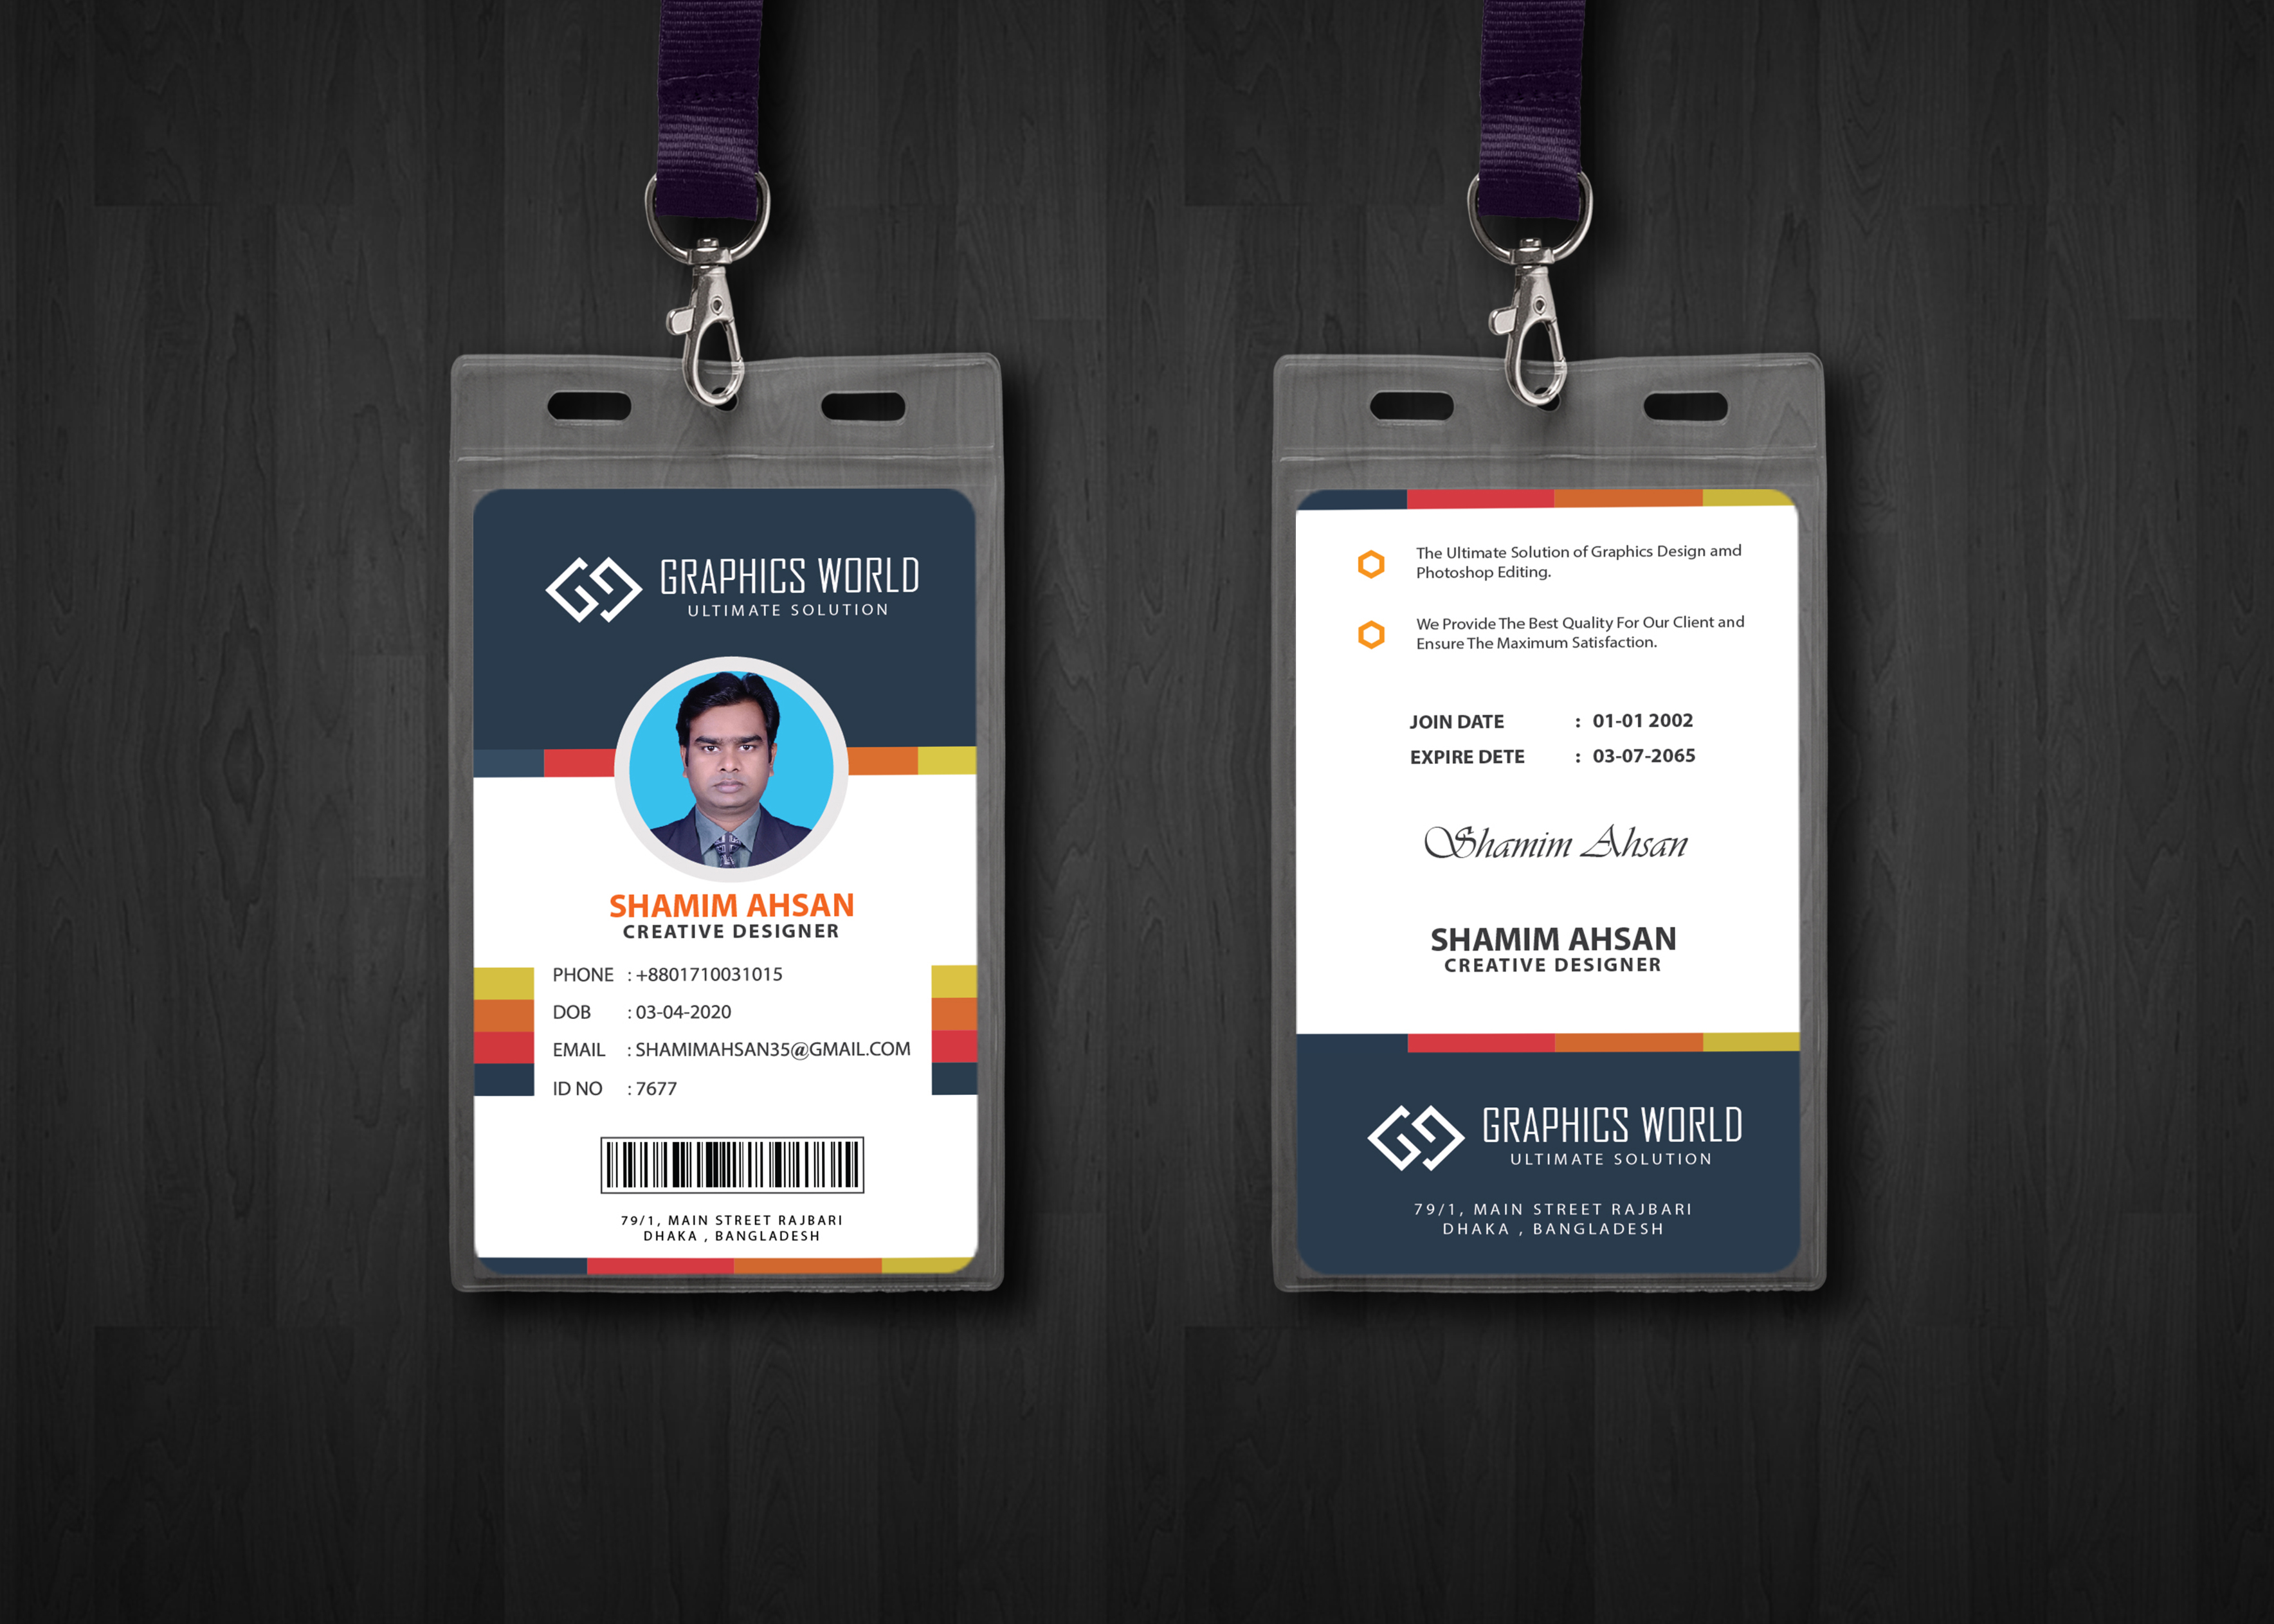 Design Creative And PROFESSIONAL Id Card Within 24 Hours